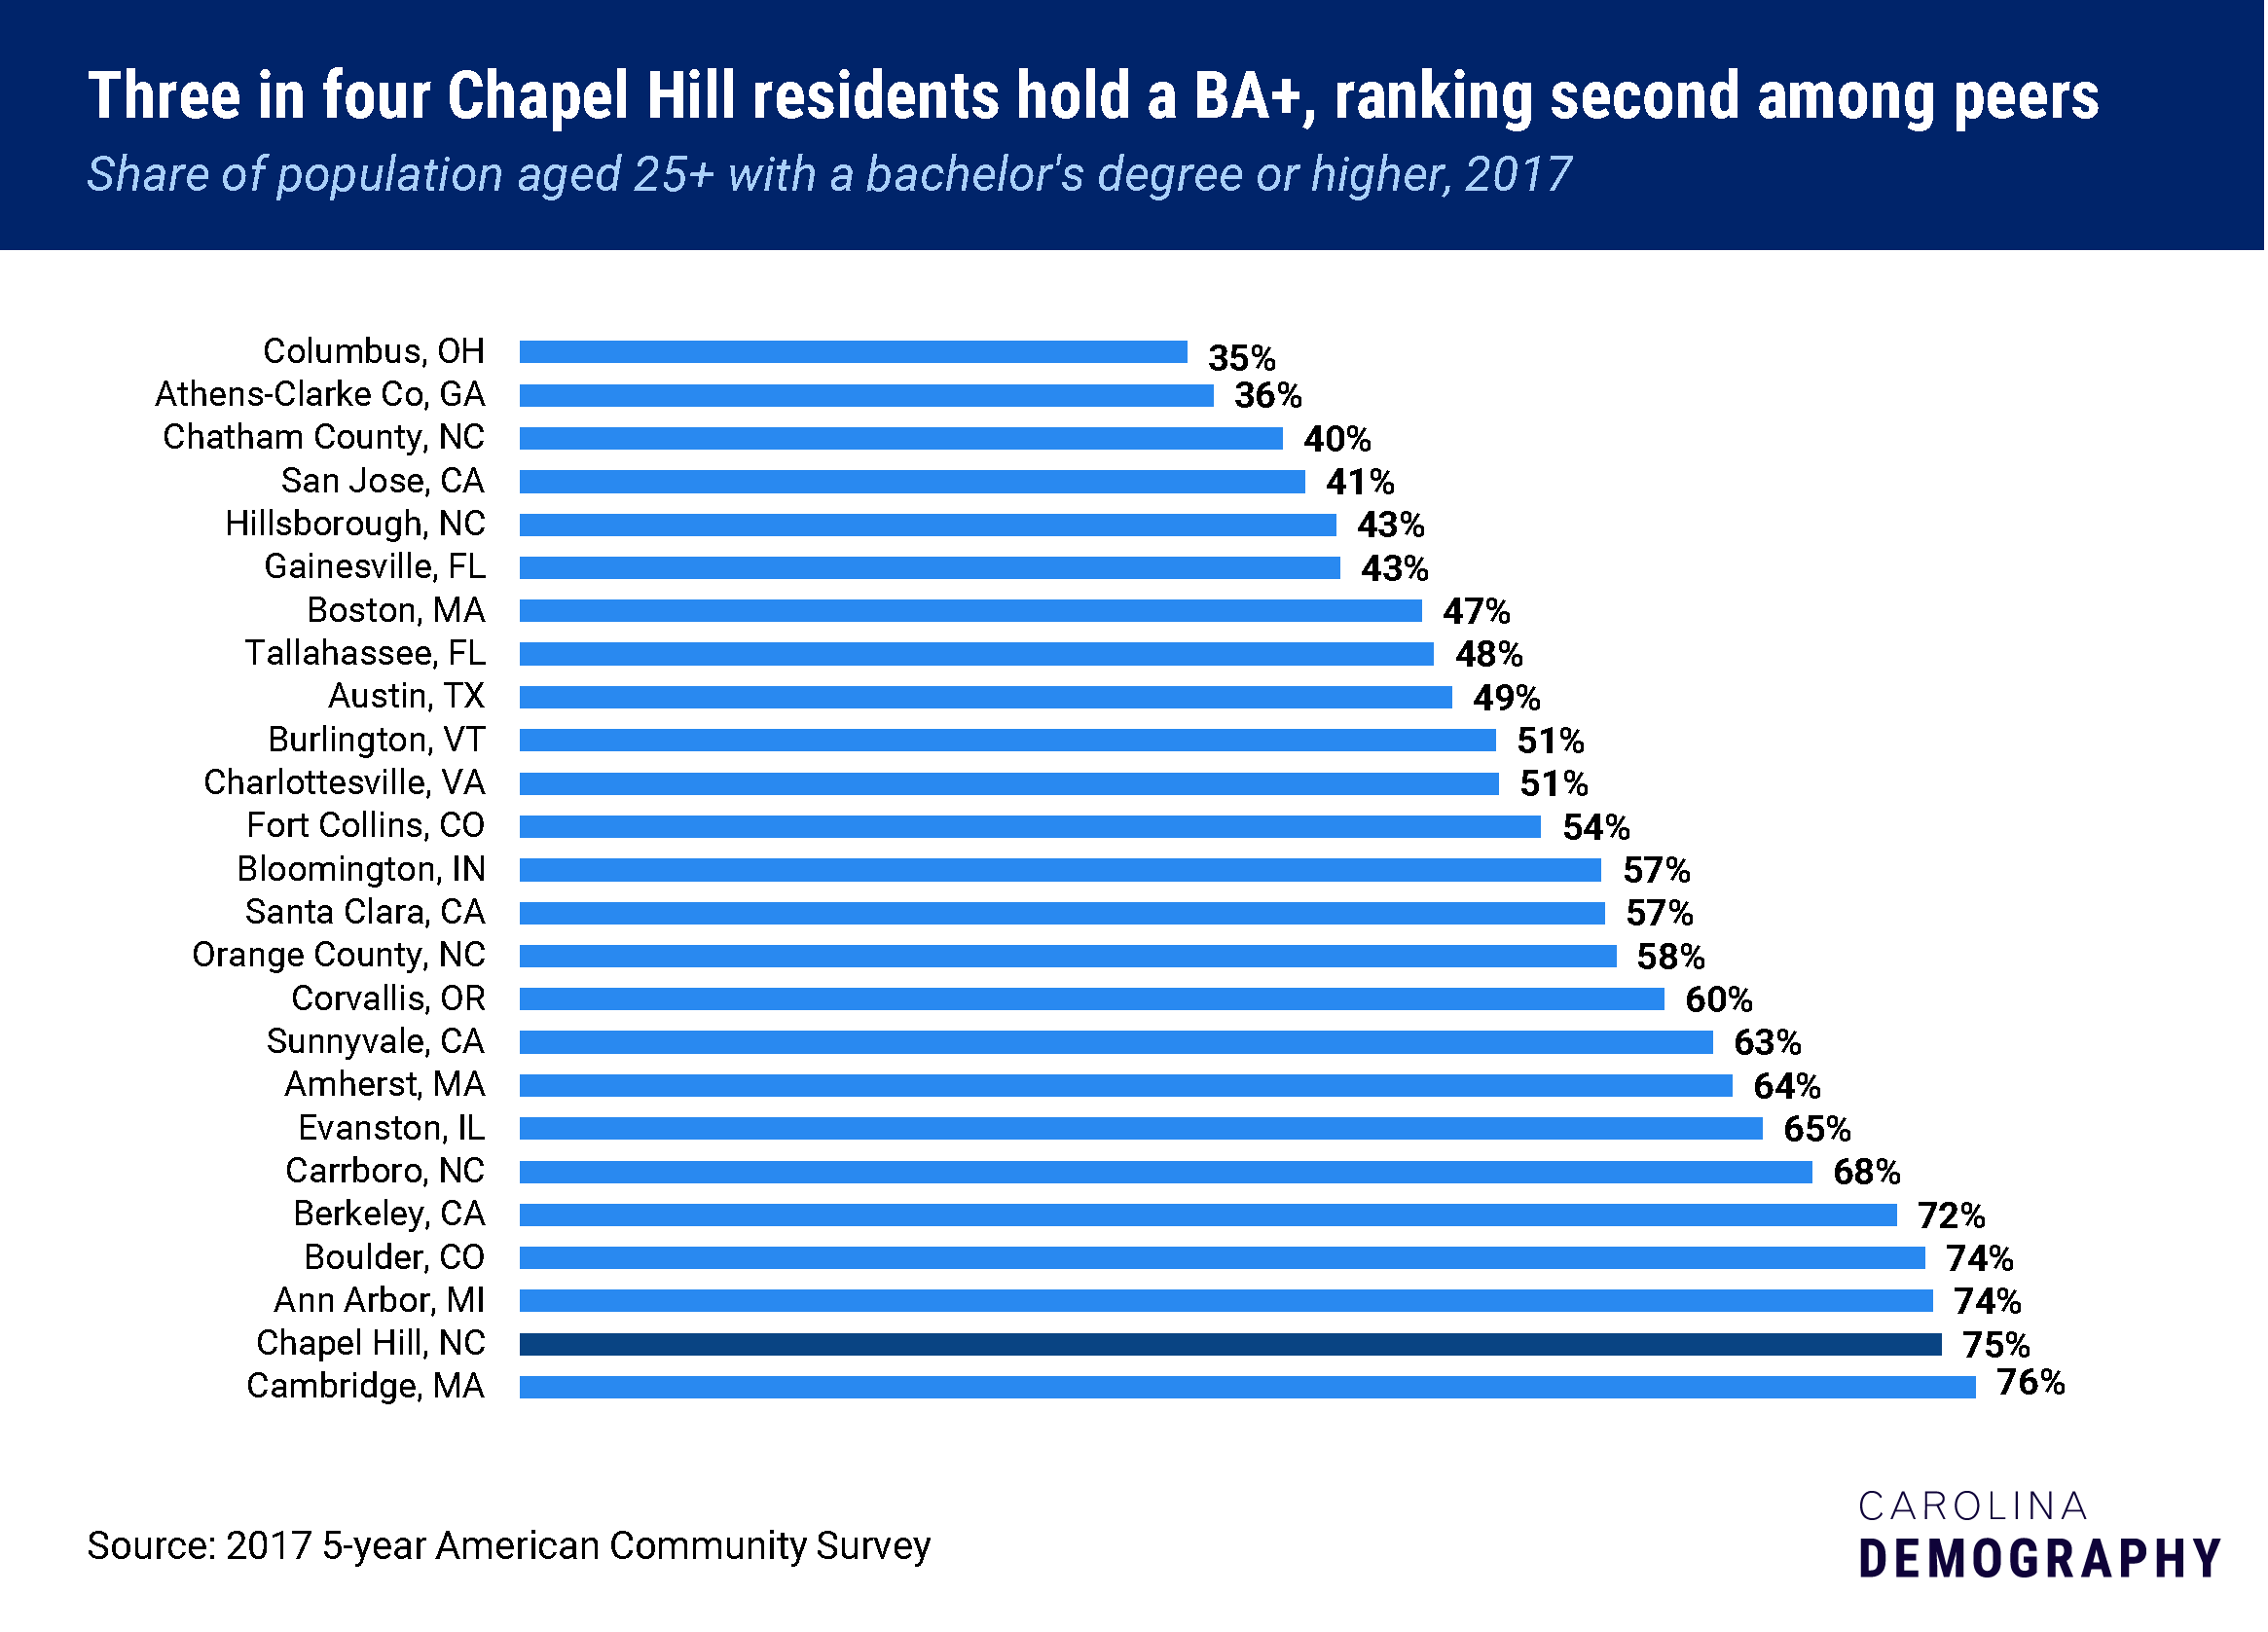 Three in four Chapel Hill residents hold a BA+, ranking second among peers, Share of population aged 25+ with a bachelor's degree or higher, 2017